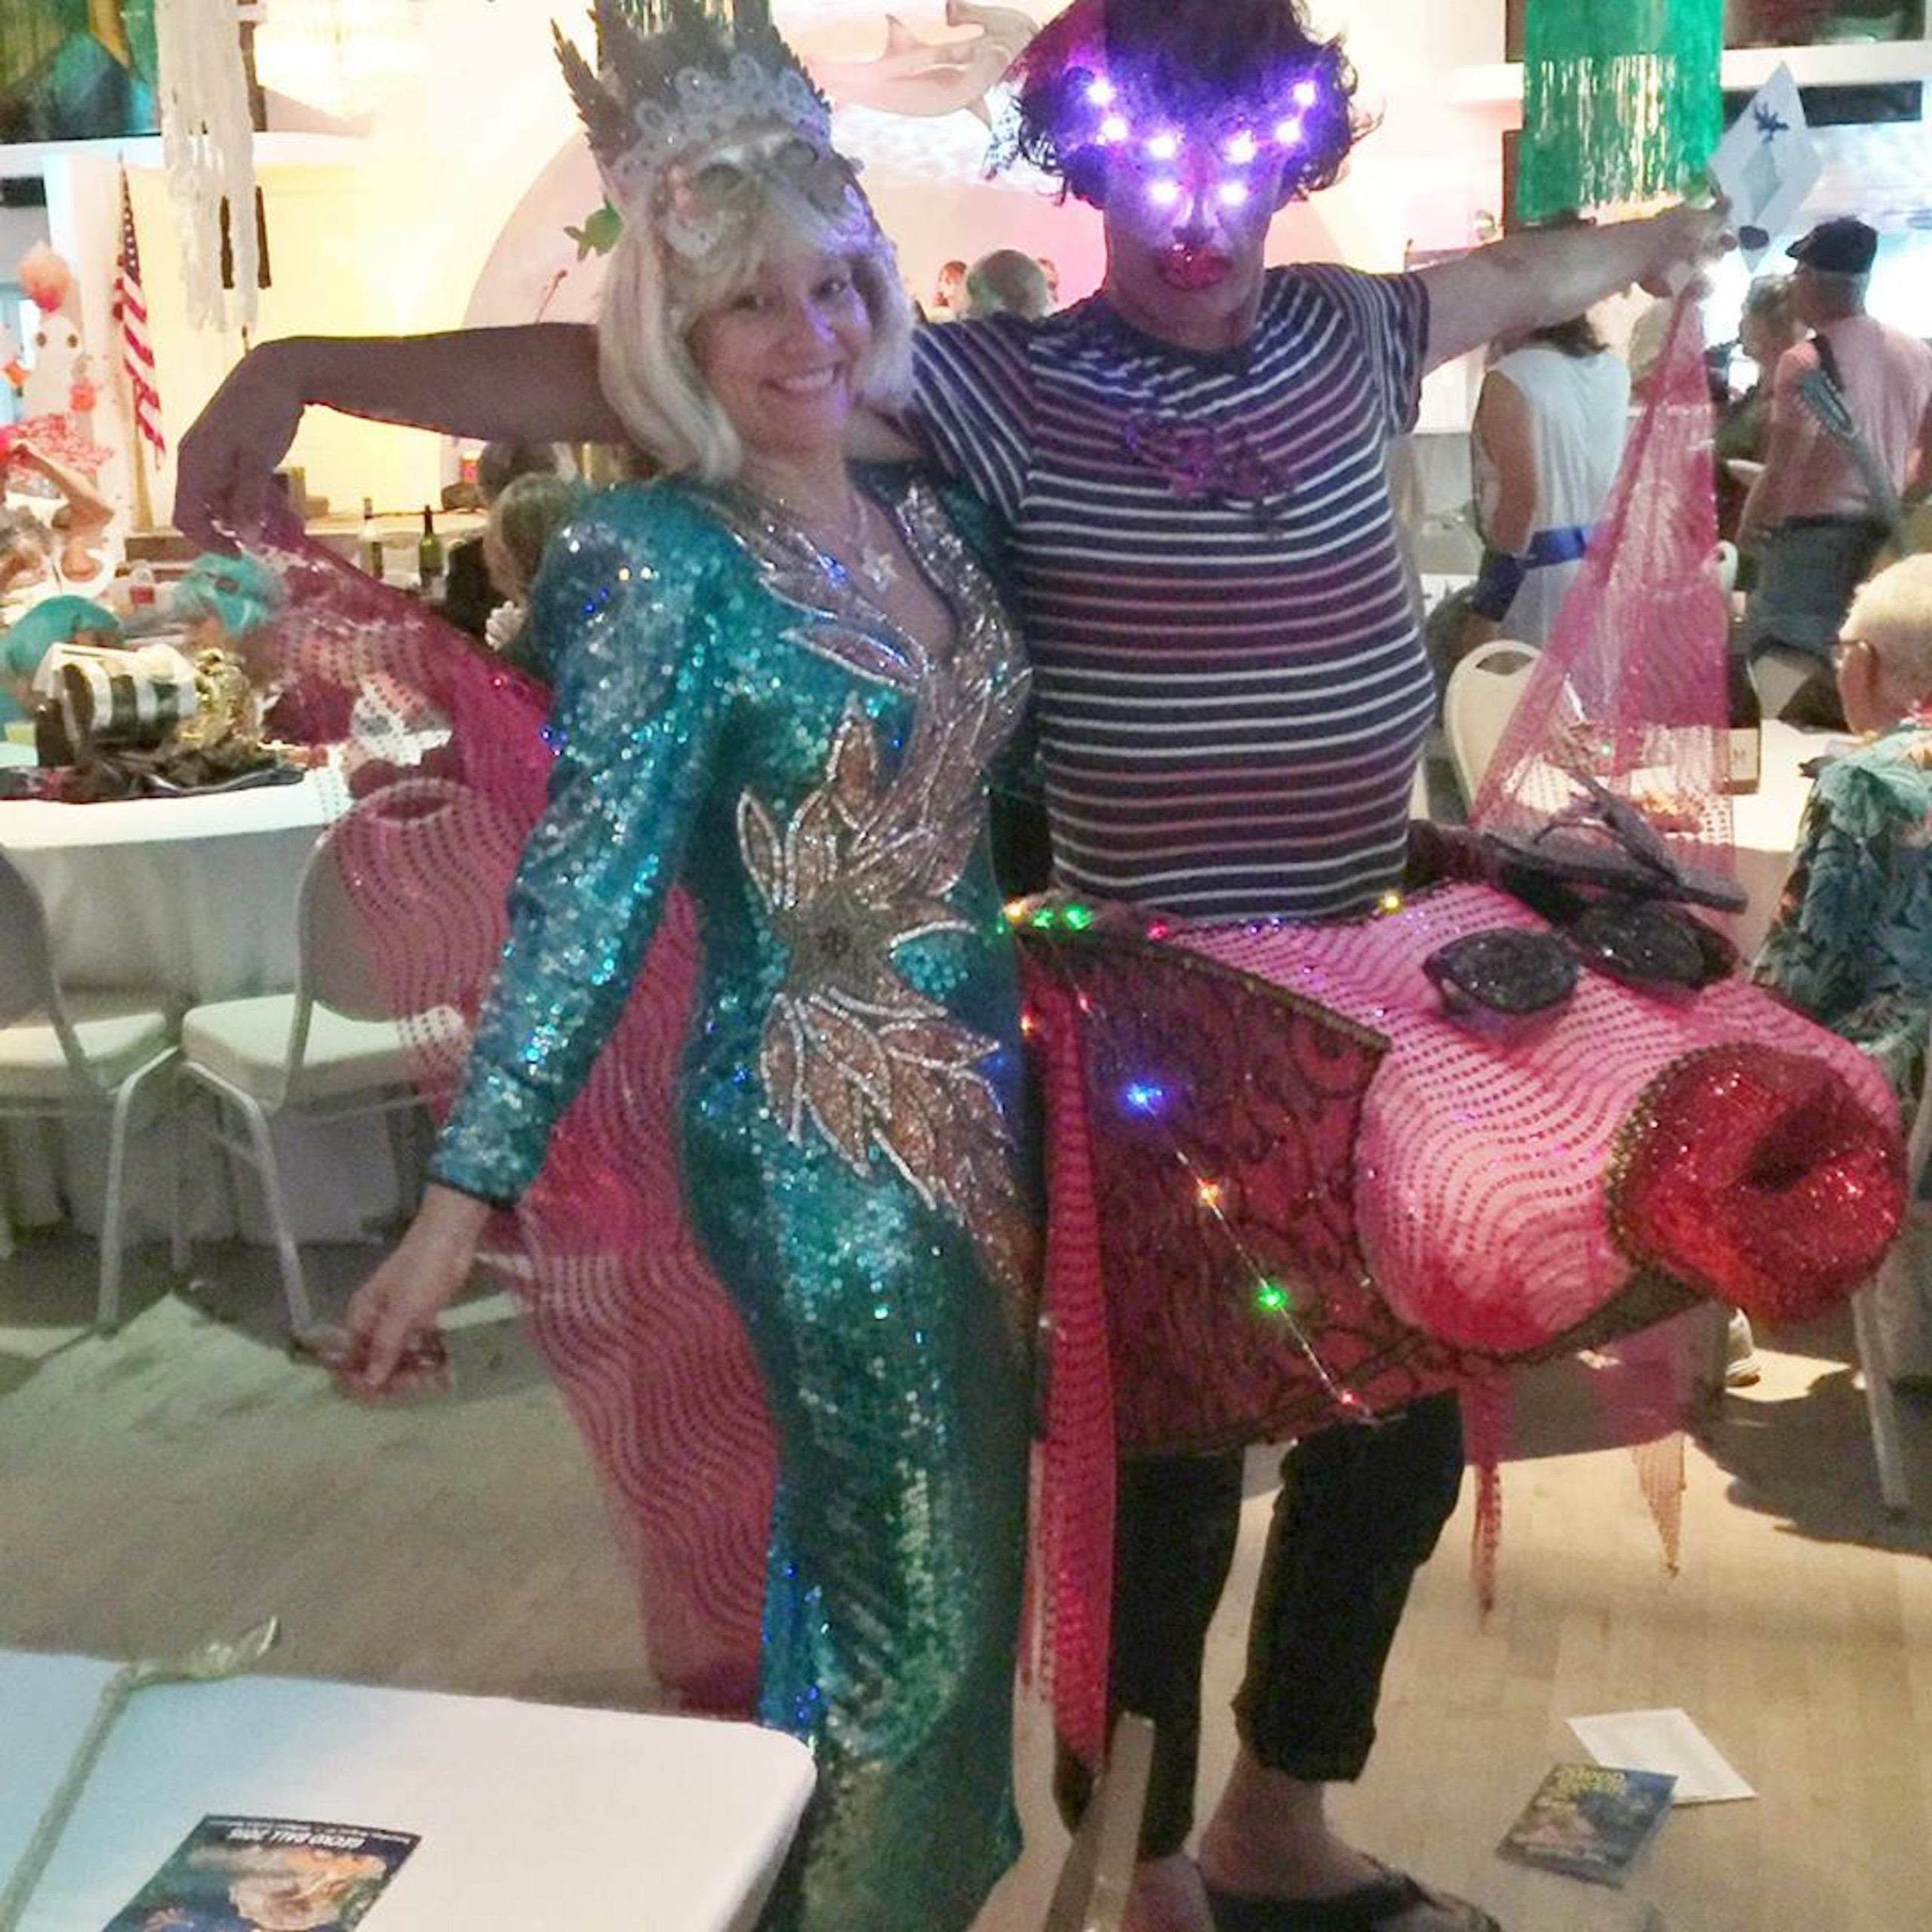 A woman in a mermaid costume and a man in a pink fish costume with lighted eyes smile at the camera.